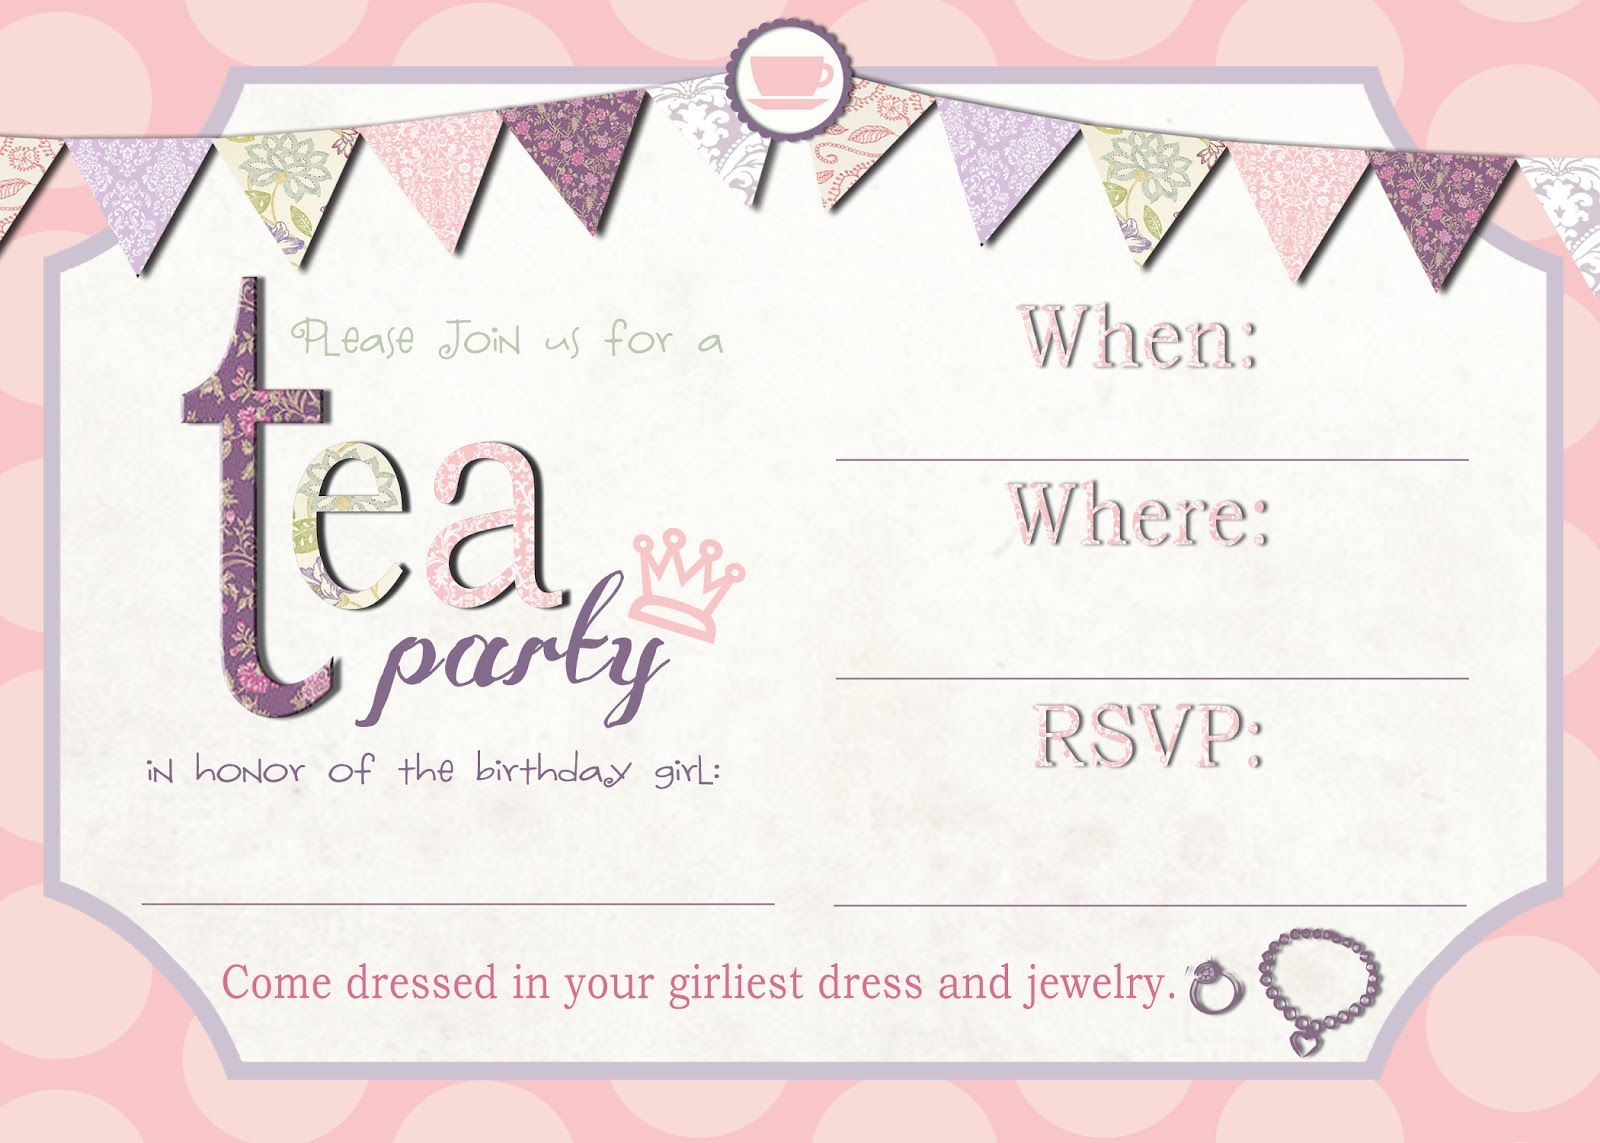 tea party birthday invitation template ; 63b323abb3e118e1557d00c0808ebf59